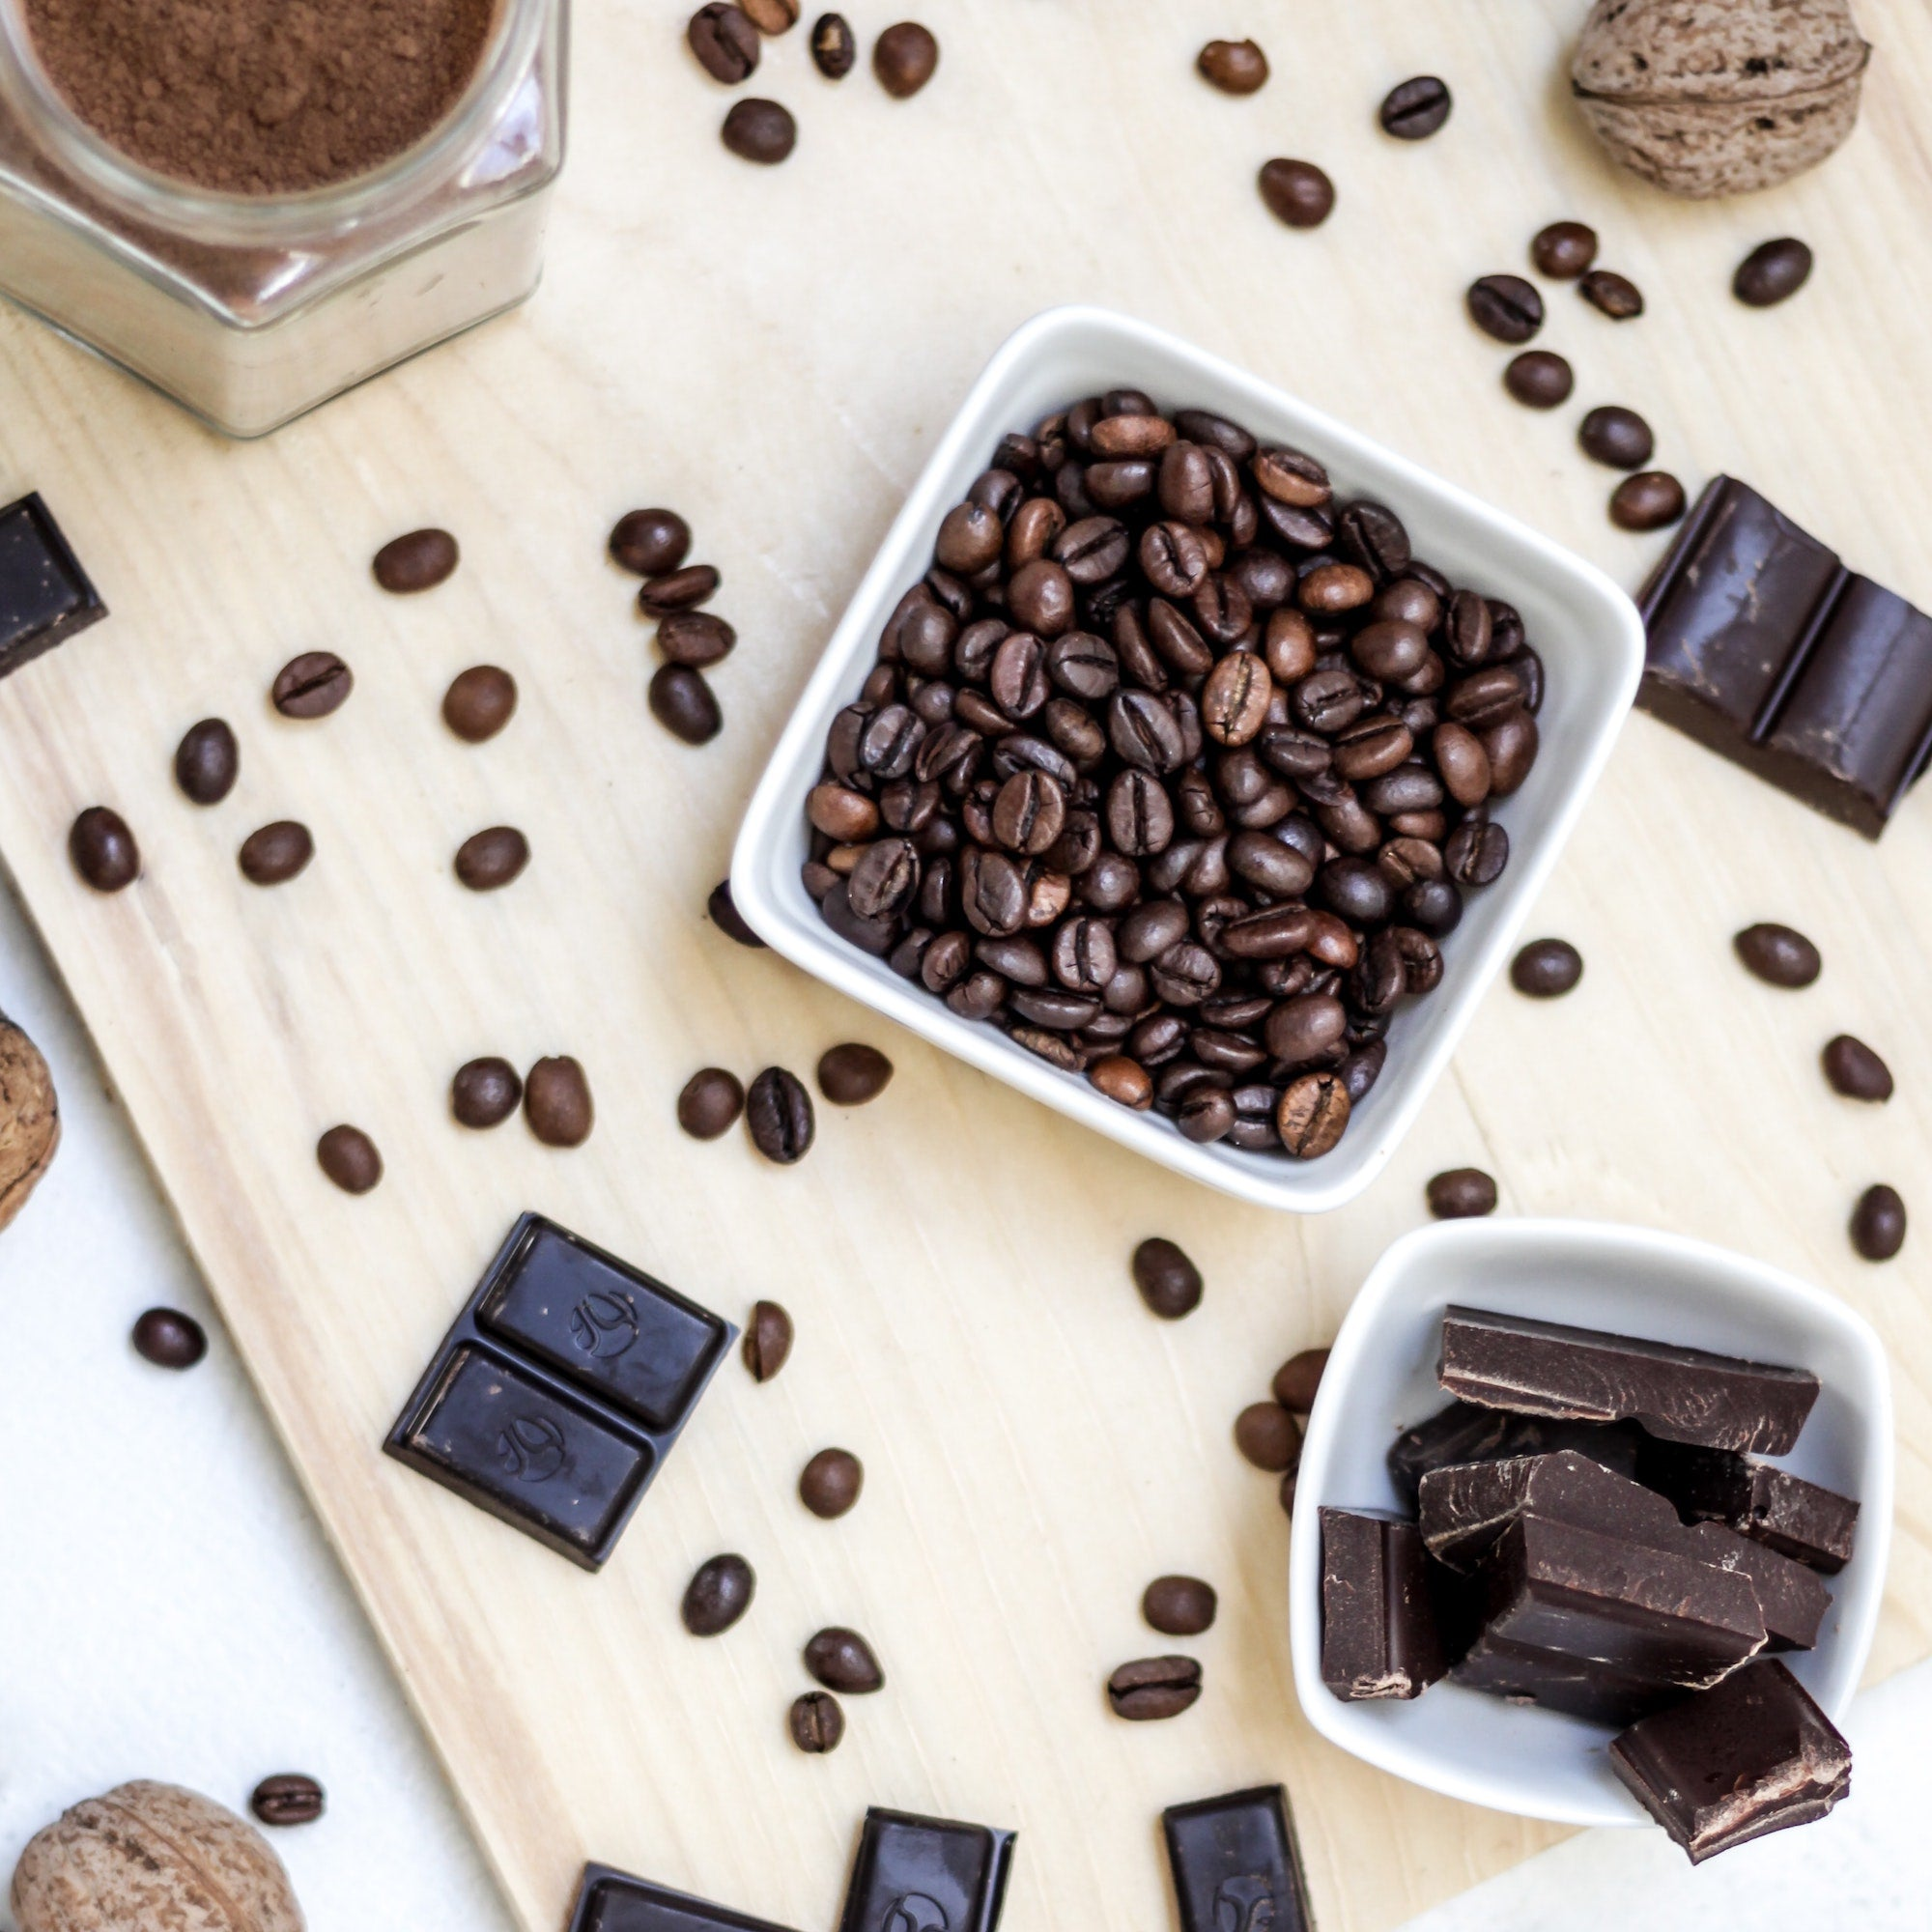 Coffee + Chocolate = A Match Made in Heaven